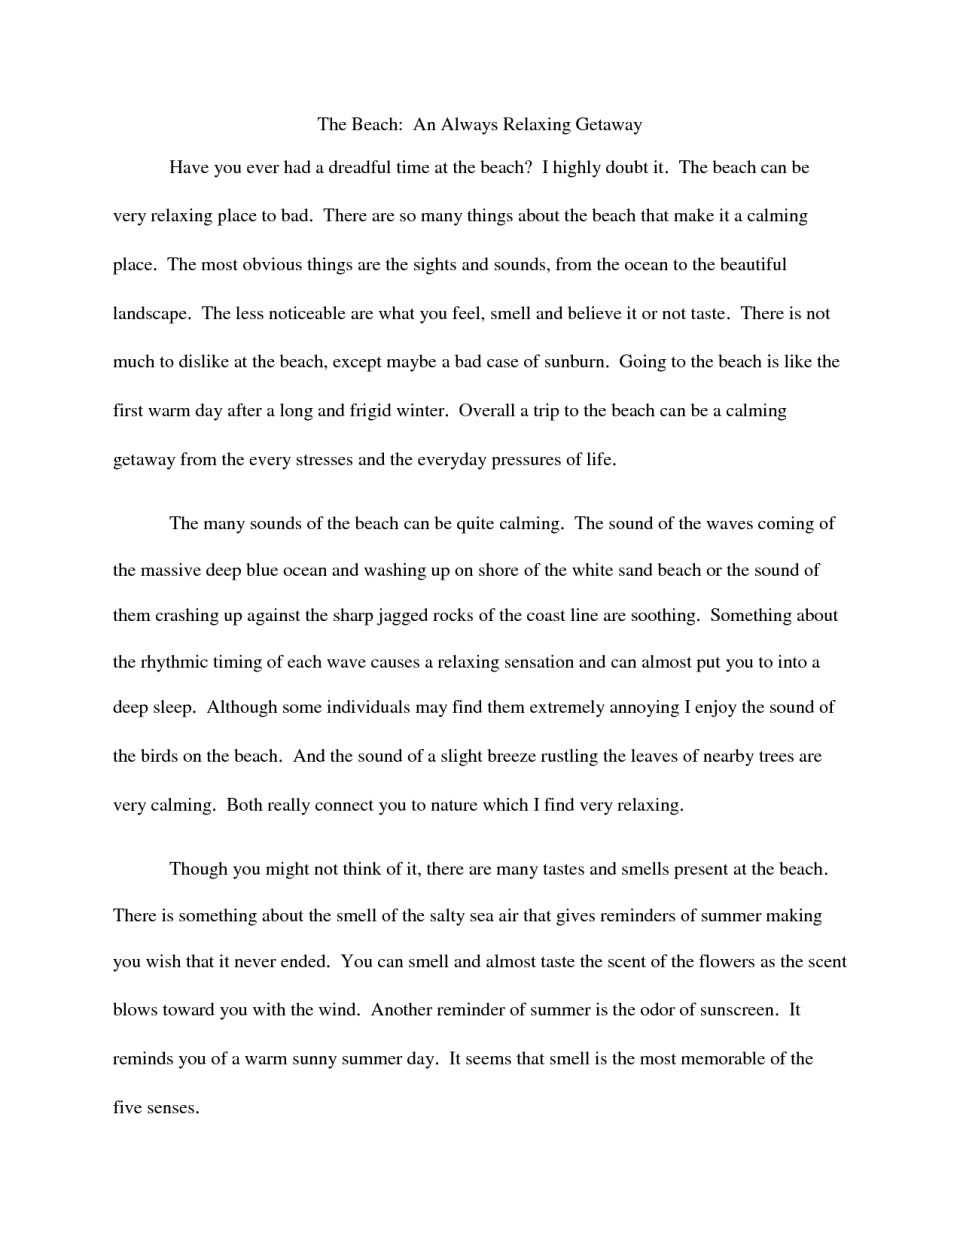 006 Essay Example Descriptive Beach Essays College That Stand Out Odvqltnc Short On The Sunset Paper Barefoot About Walk Vacation Narrative At Night Free Unbelievable Examples Good A Person For High School 960